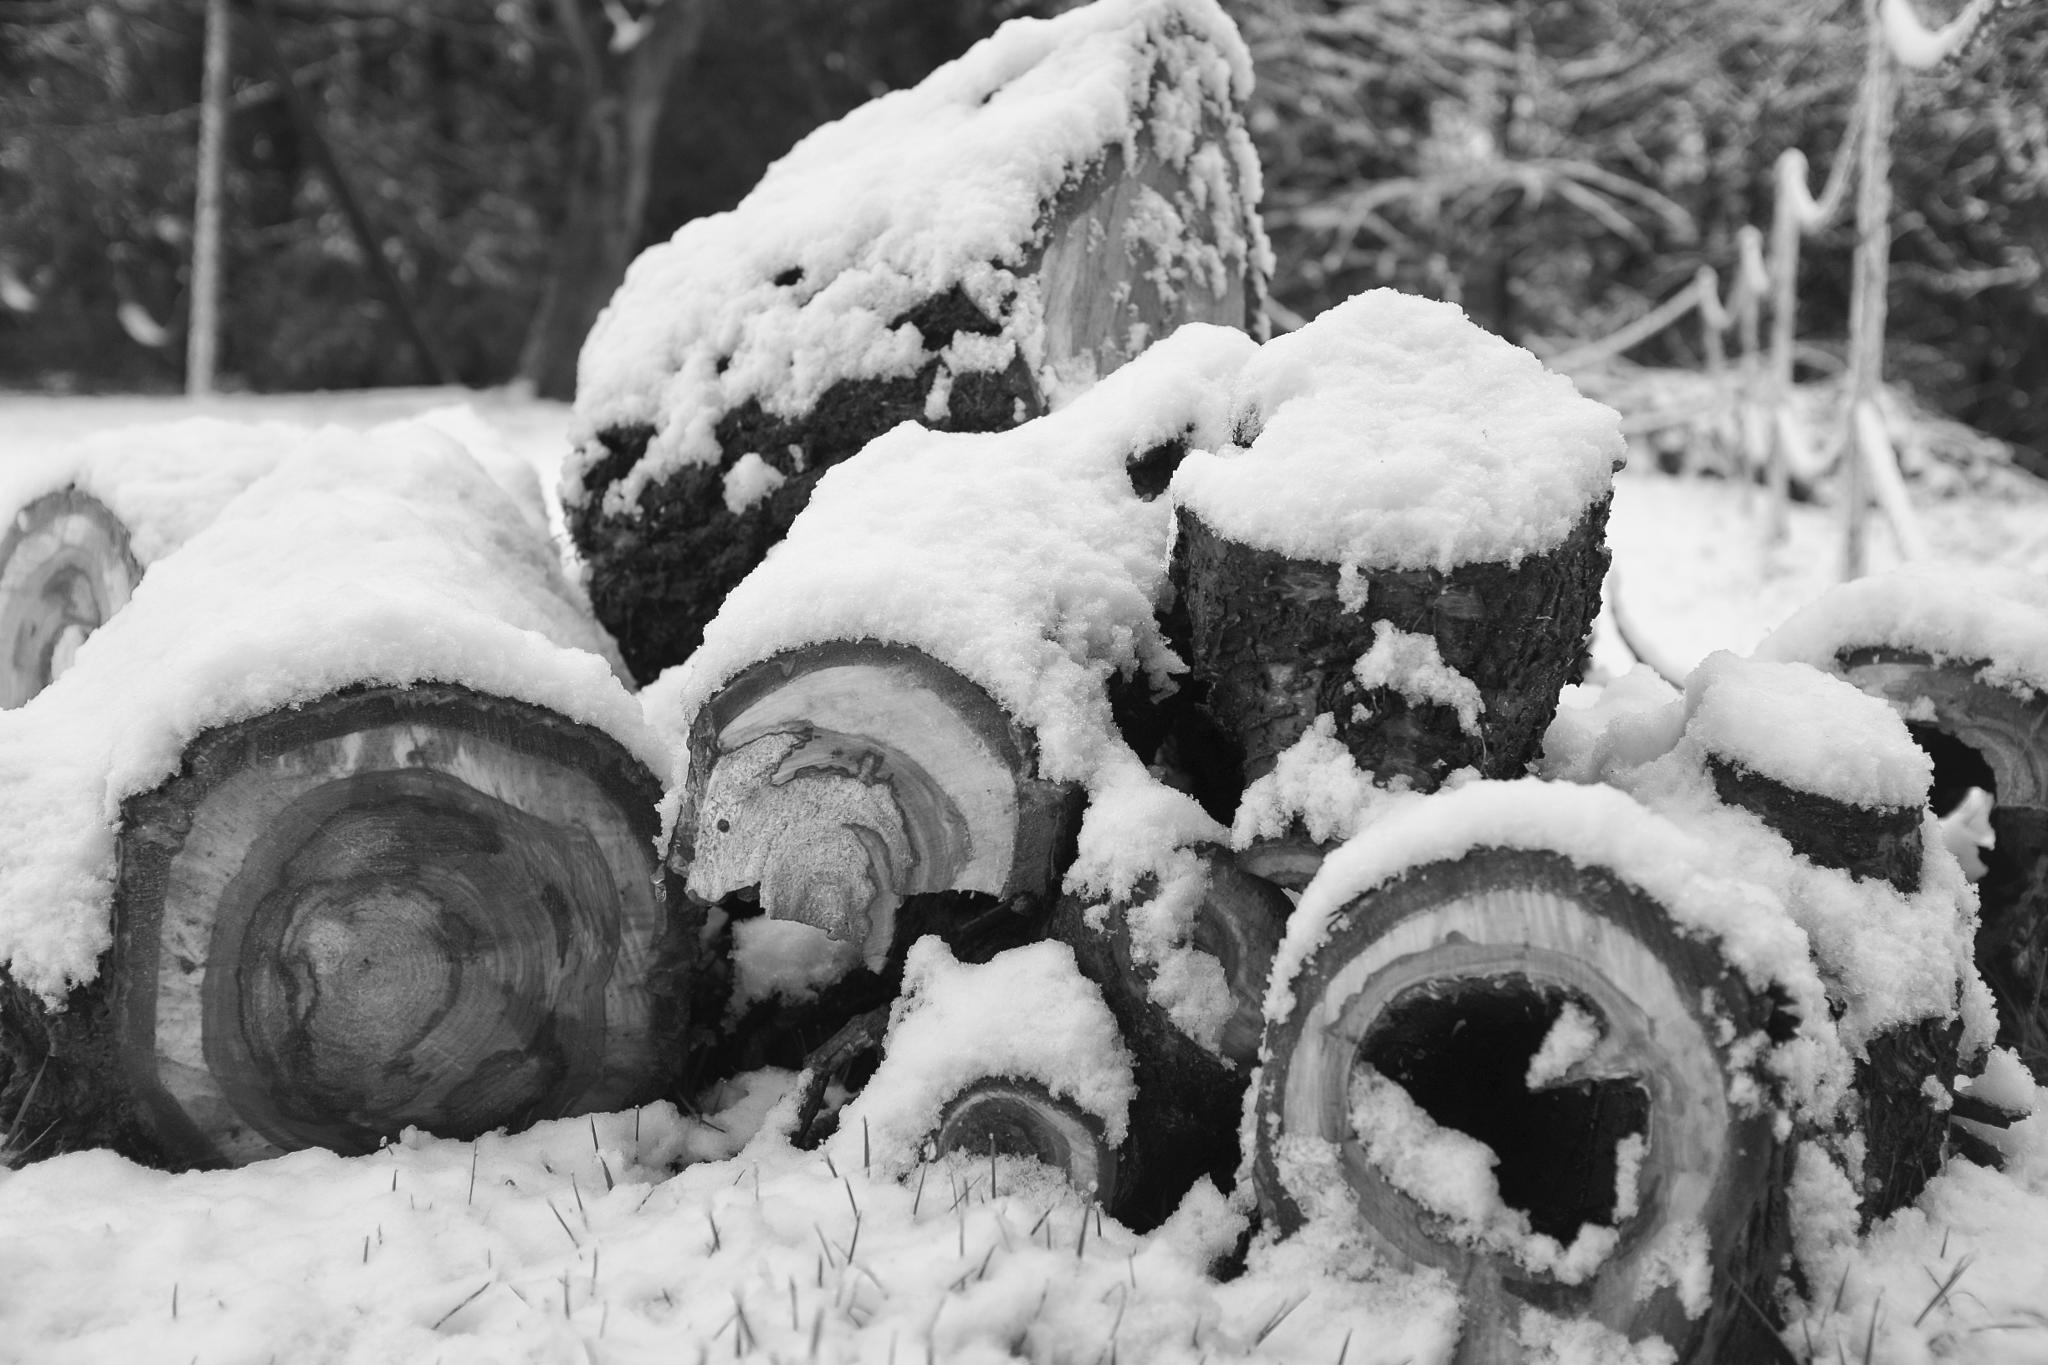 Logs in the Snow by Martin Beecroft